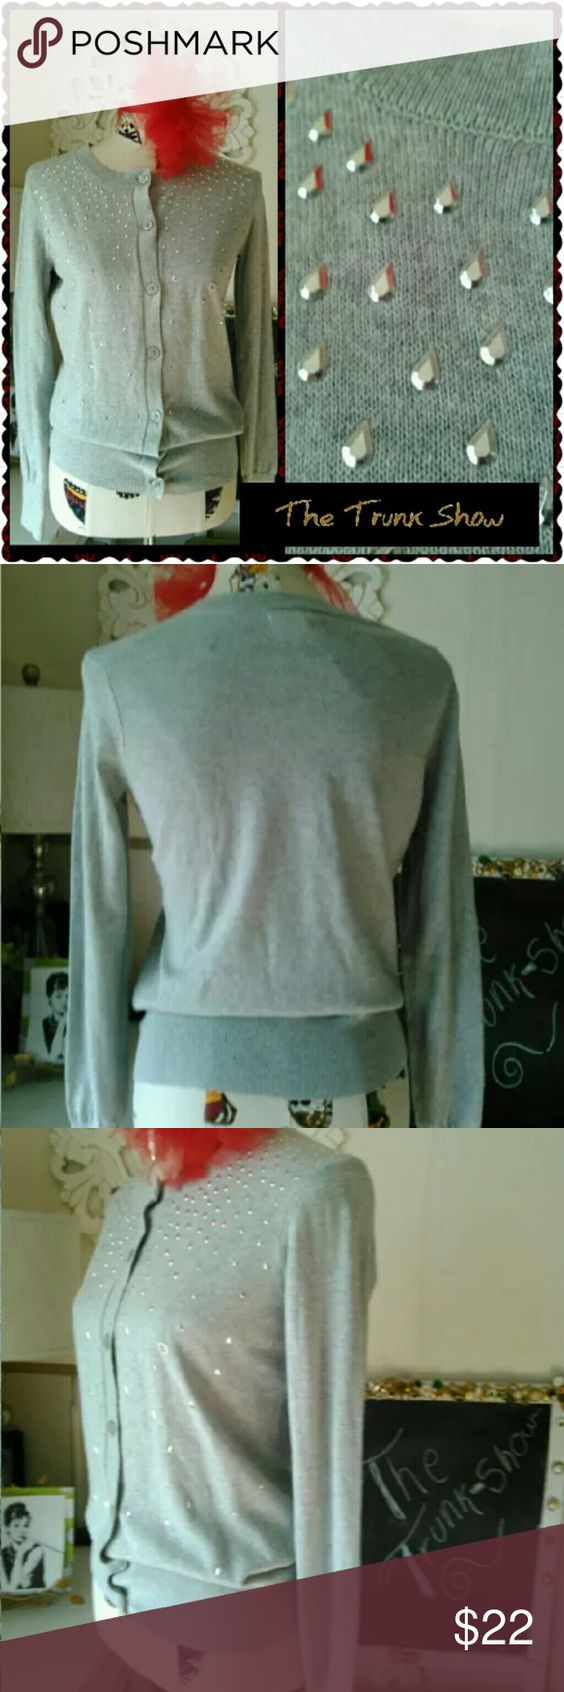 BASS Light Grey Button up Cardigan Size MEDIUM Lovely grey cardigan by Bass, With embellished bodice, button up. this is a brand new item.   Bust 39? LENGTH 16? From under arm to hem  Sorry no trades XOXO Alice Bass Sweaters Cardigans